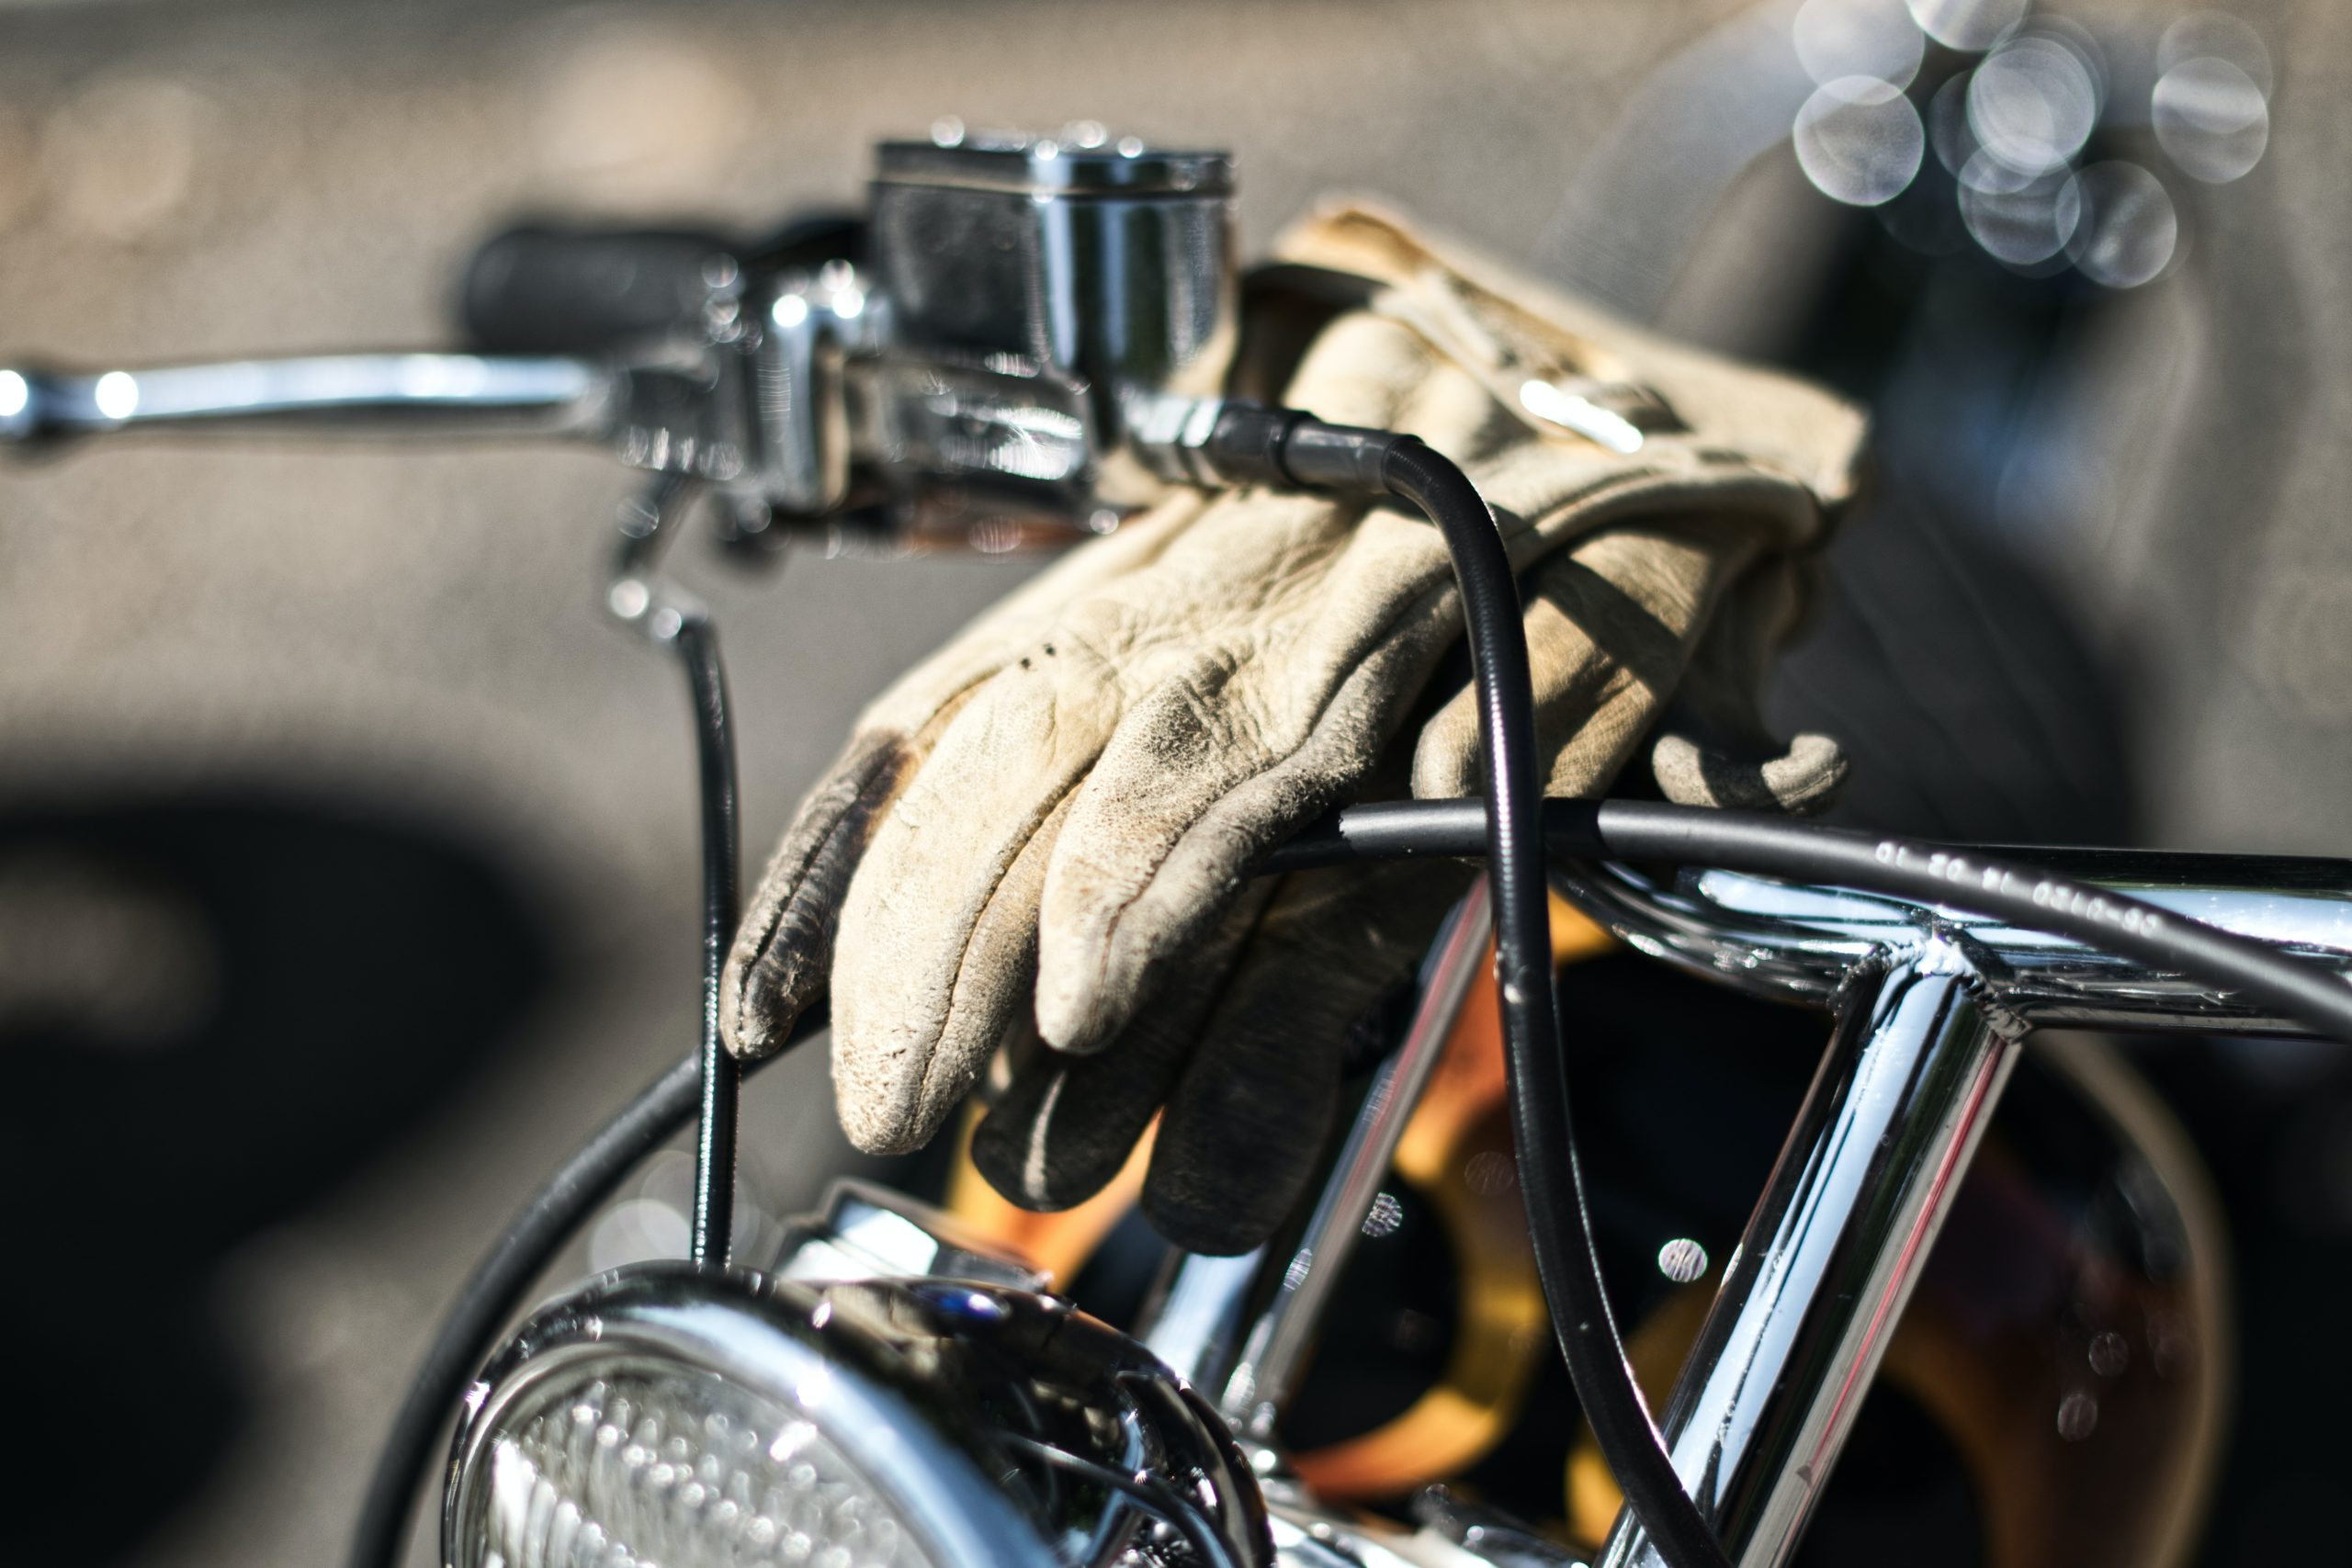 Storing Your Motorcycle Safely